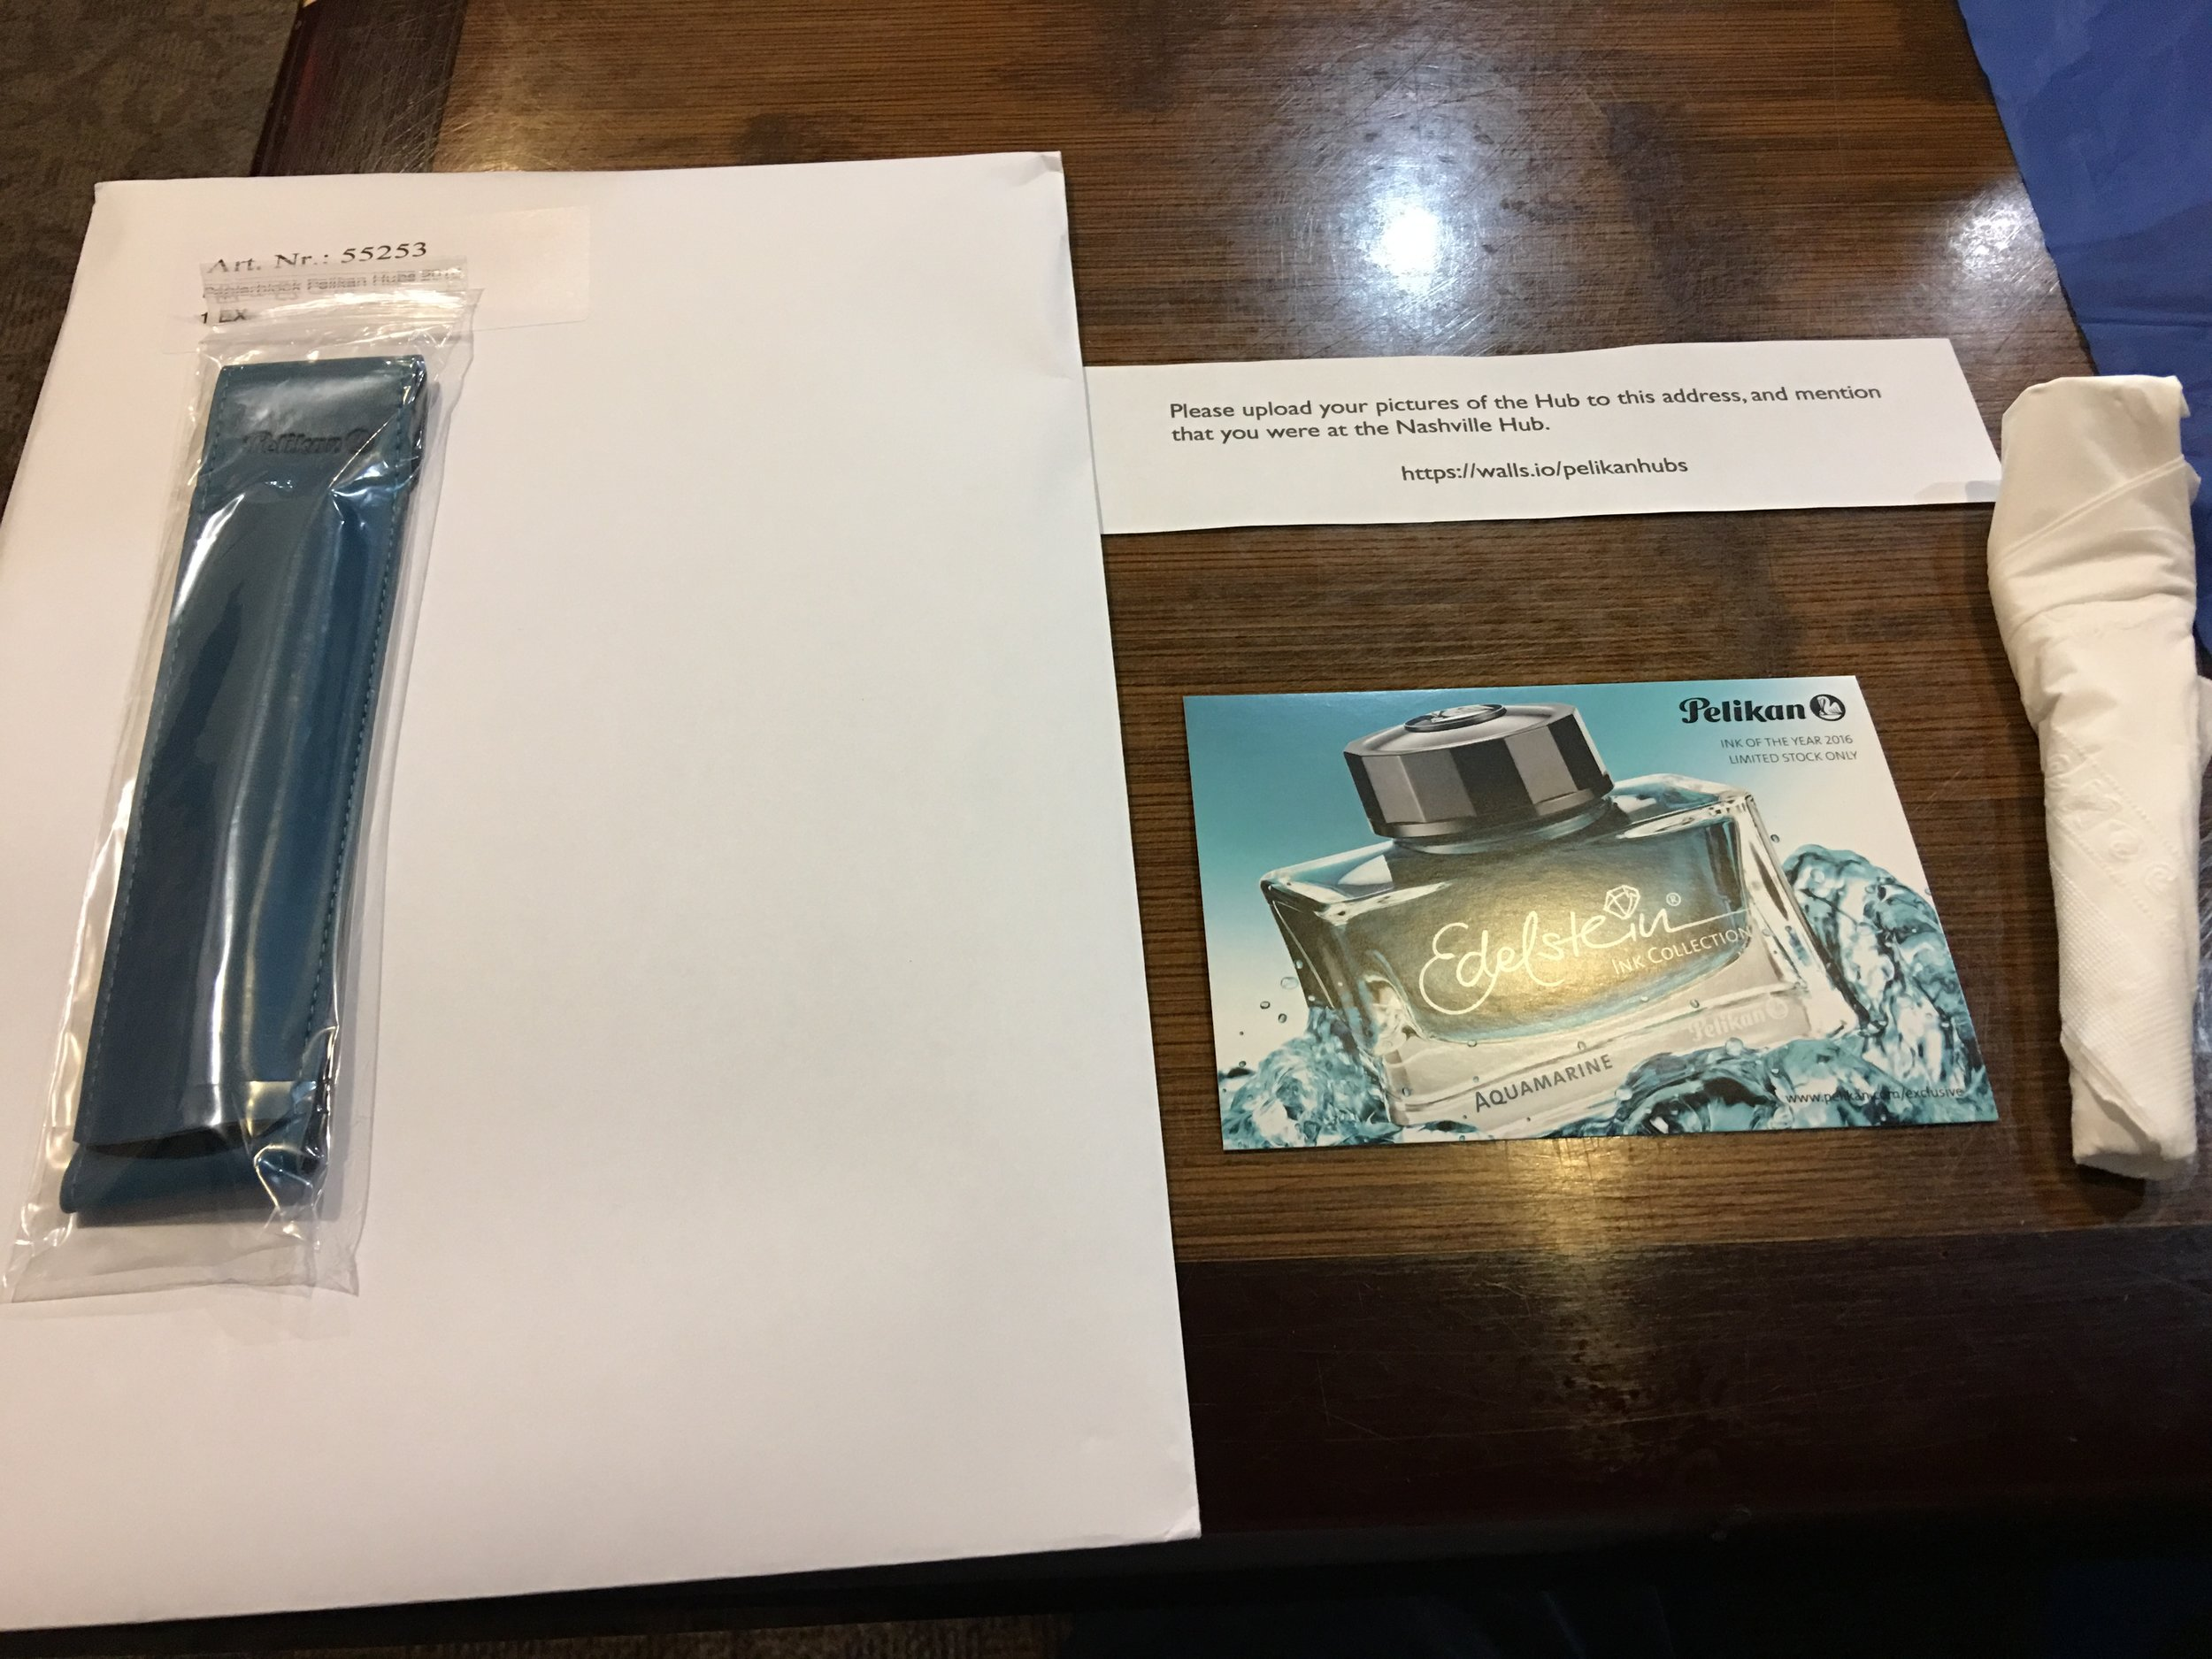 Pelikan Hubs Swag, from left: a quiver-style pen holder that attaches to a notebook, a pad of paper, and an Edelstein ink postcard,  Everyone who registered also received a bottle of Edelstein Aquamarine Ink.